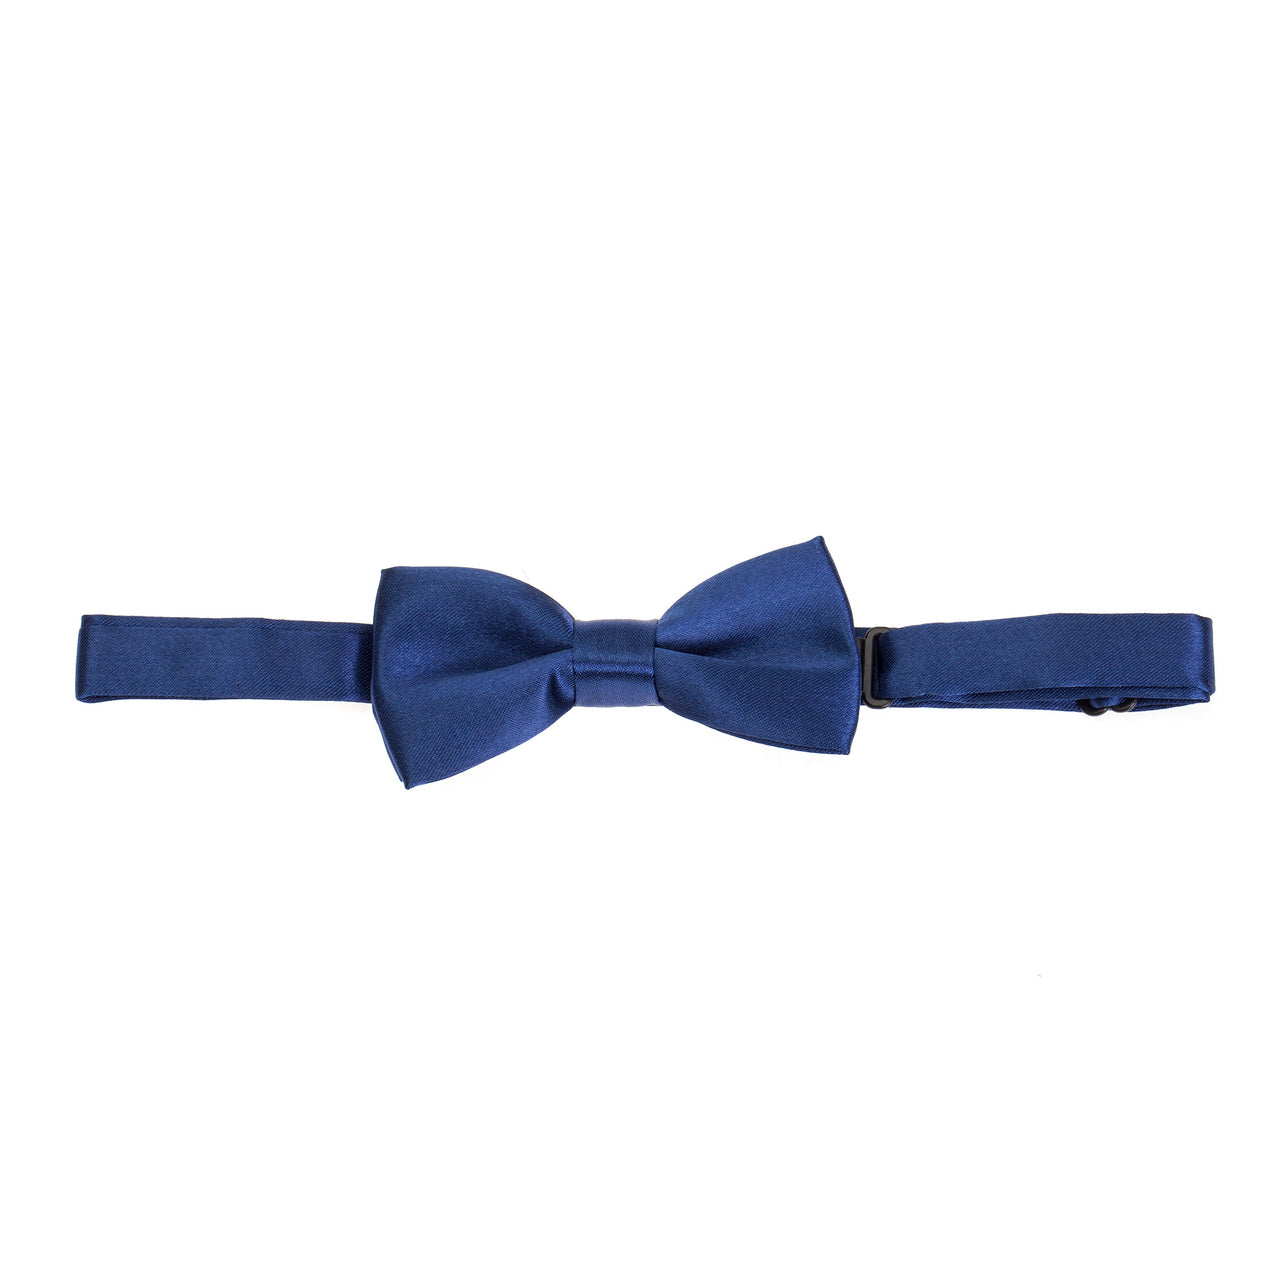 Kids Pre-tied Plain Satin Bow Tie - Navy Blue